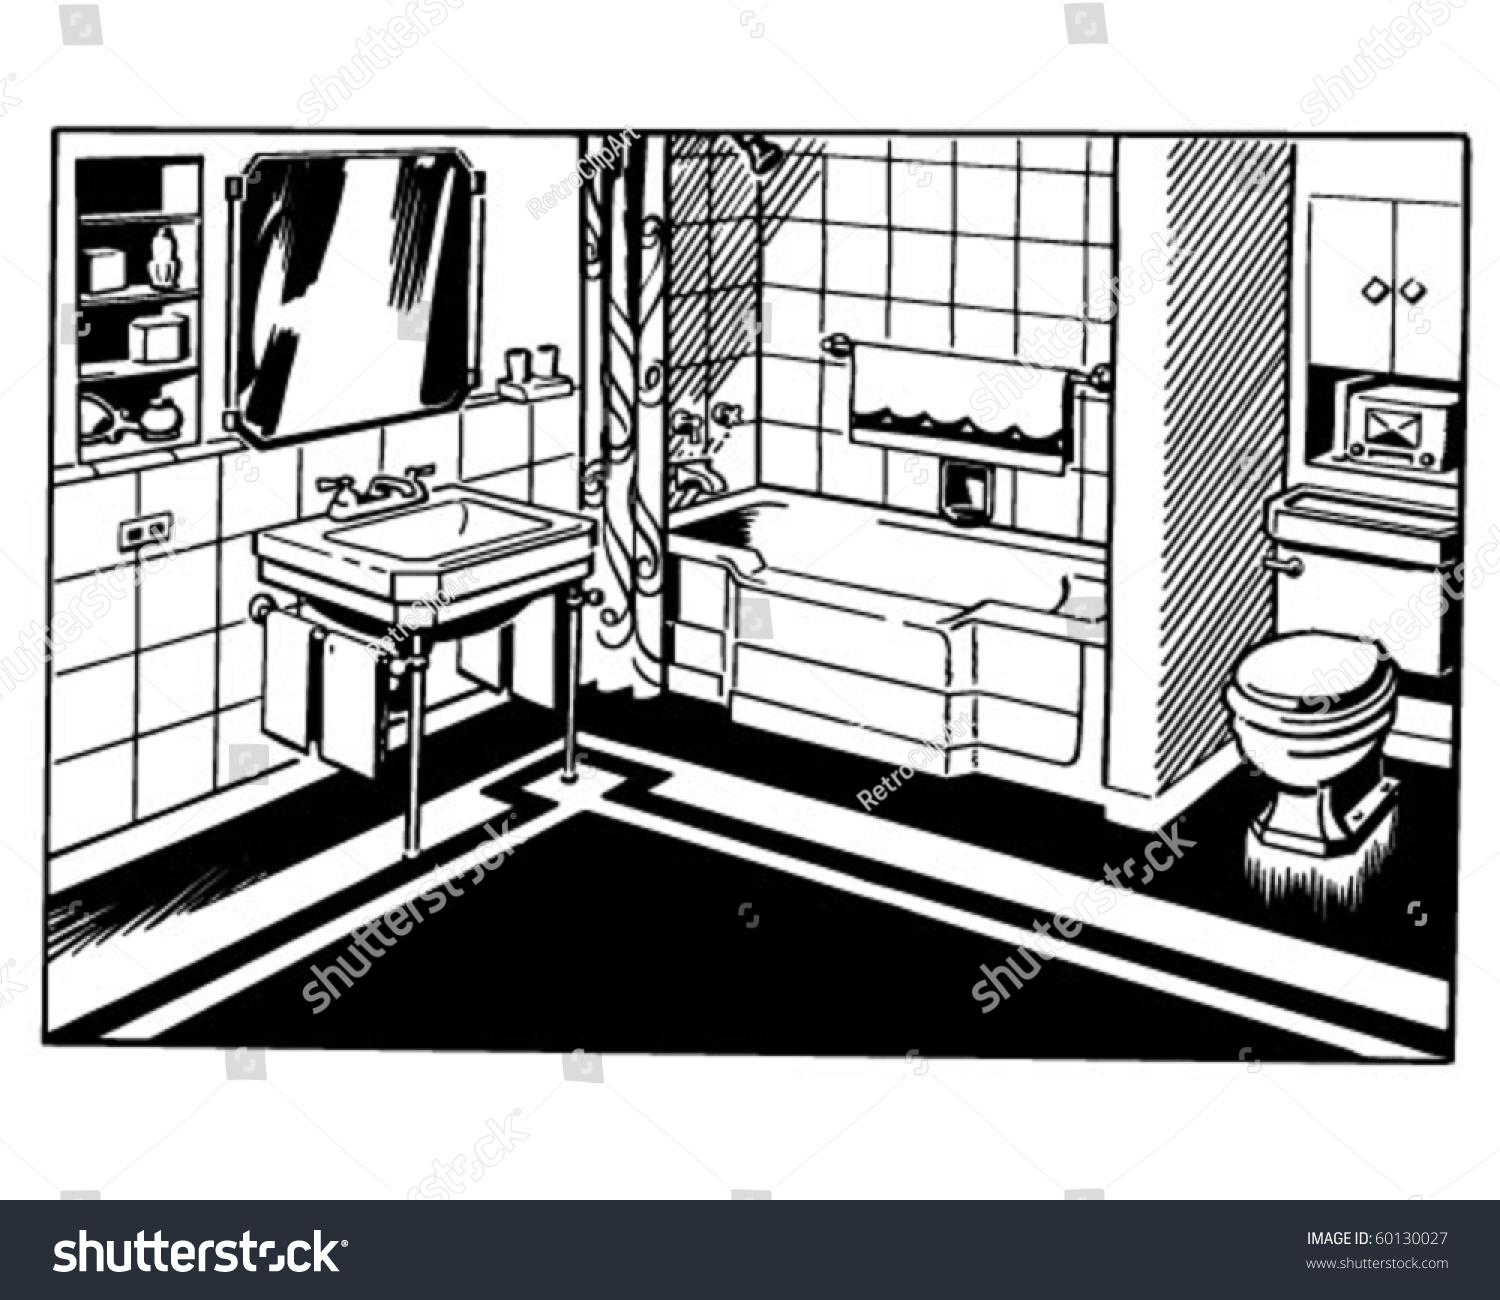 Bathroom Clip Art Black And White: Bathroom 1 Retro Clip Art Stock Vector 60130027